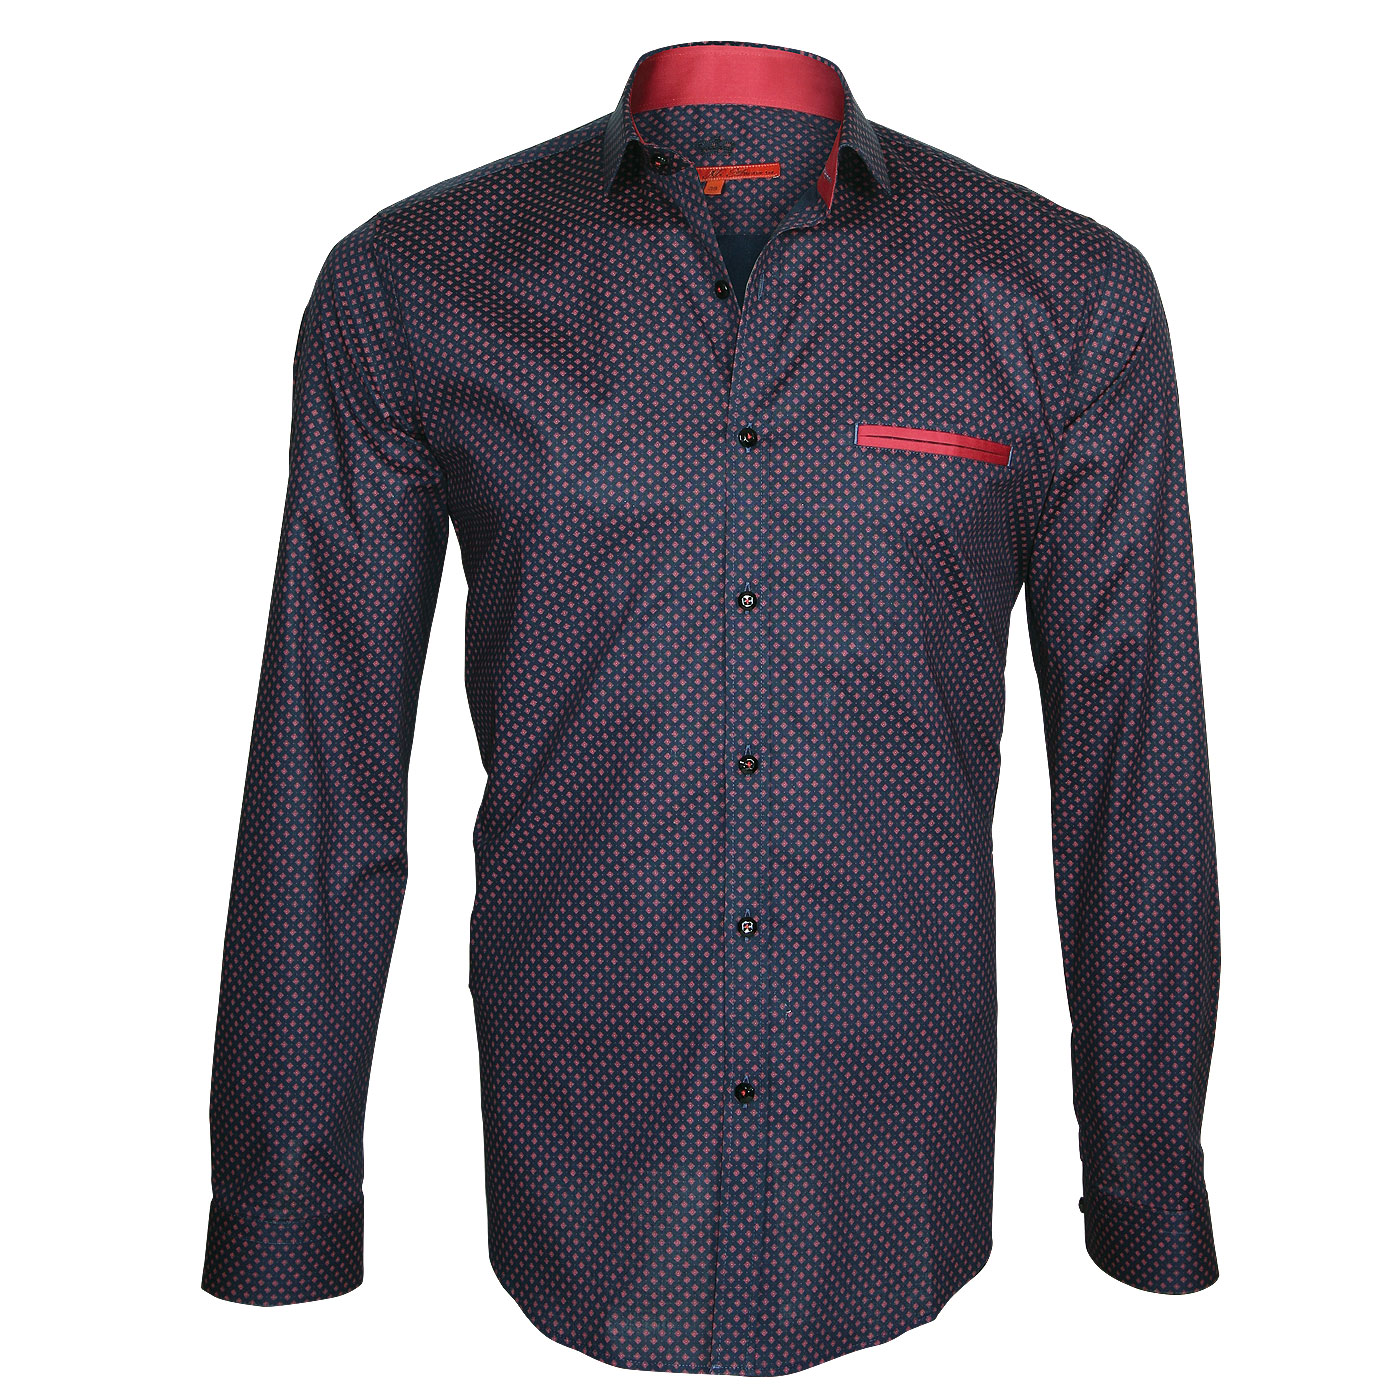 Slim Fit Shirt Collection +800 Models Online on Webmenshirts